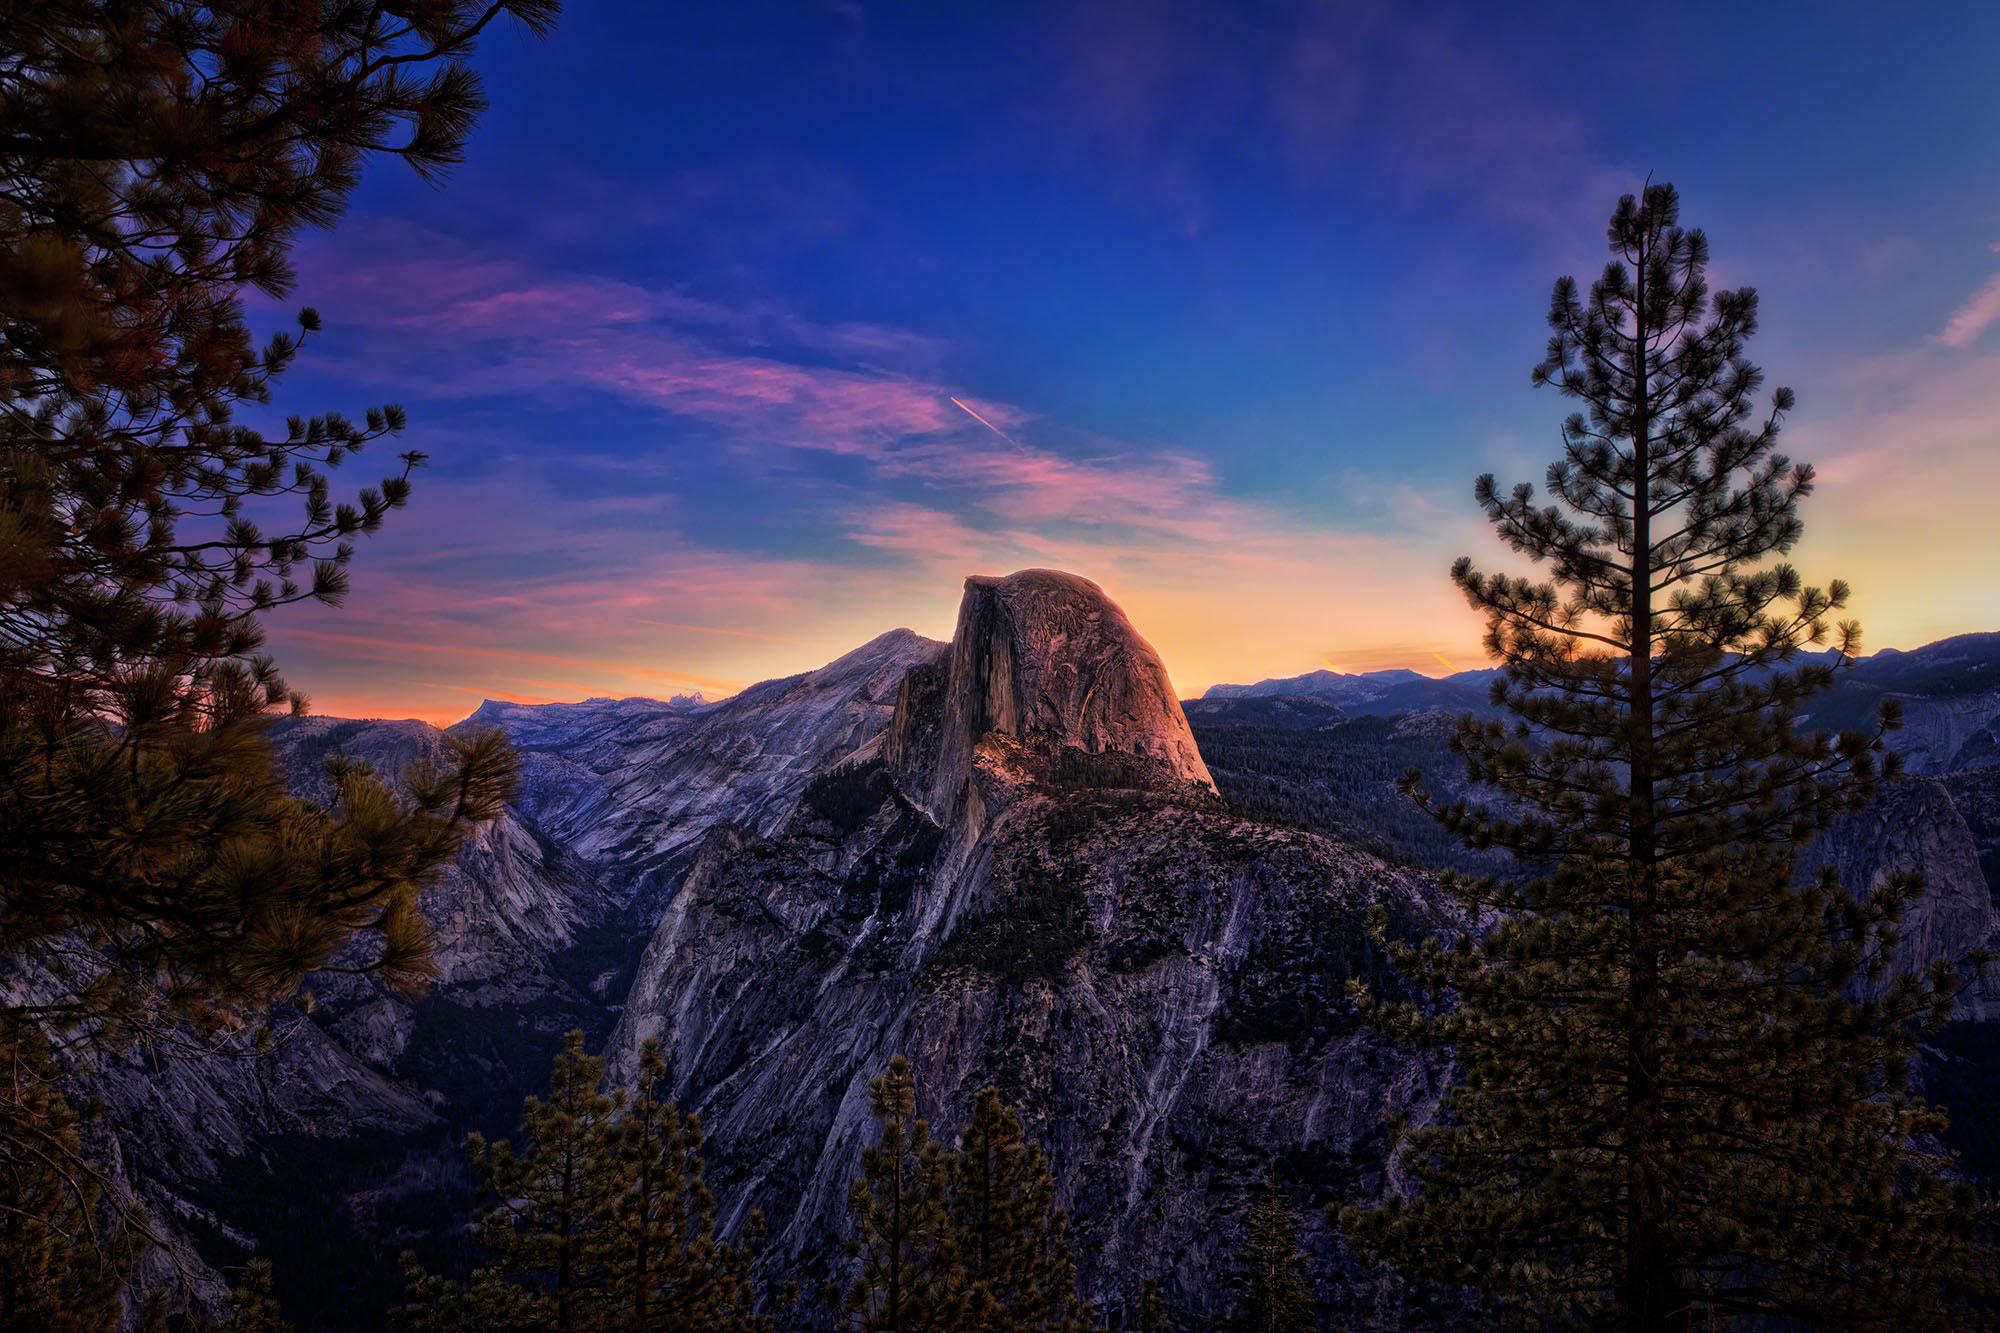 Photograph Half Dome at Sunrise by Scott Kublin on 500px